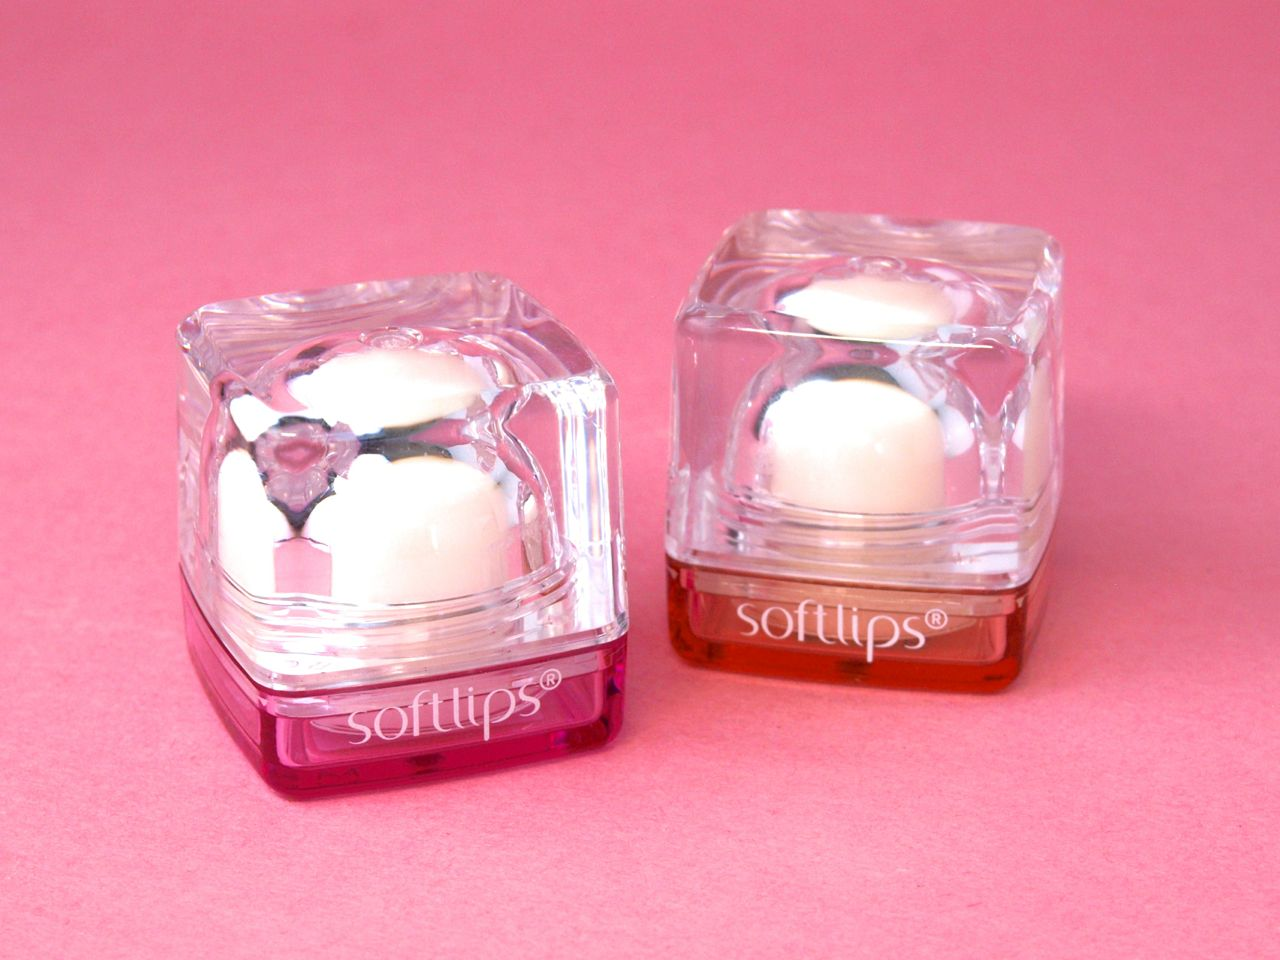 Softlips Cube in Berry Bliss & Vanilla Bean: Review